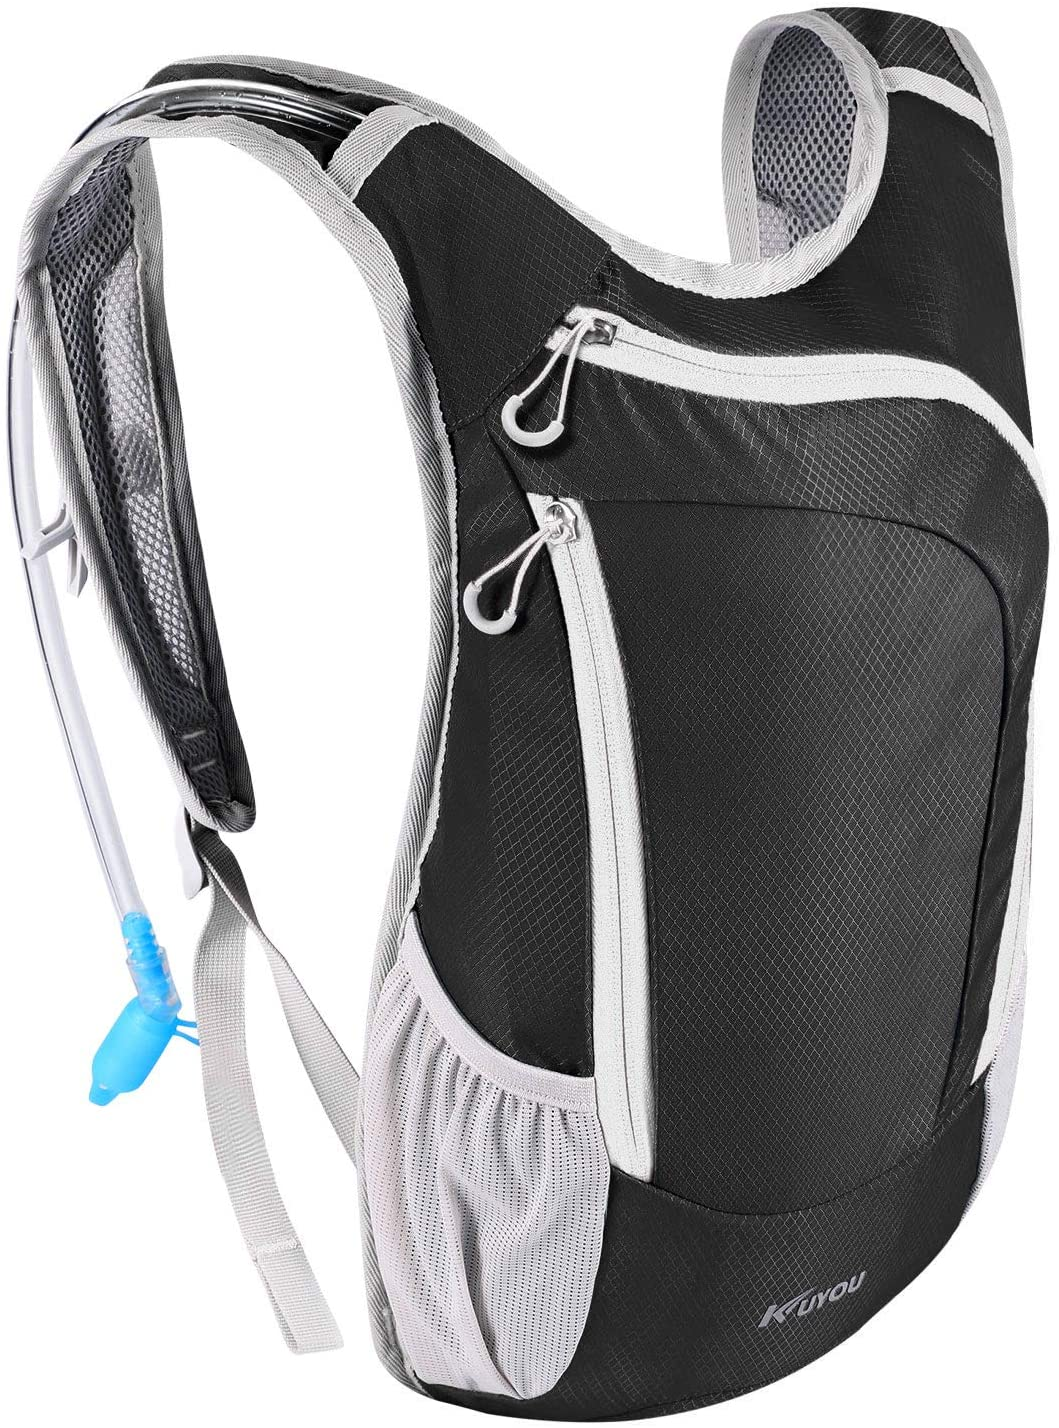 Amazon.com : KUYOU Hydration Pack, Hydration Backpack with 2L Hydration  Bladder Lightweight Insulation Water Pack for Running Hiking Riding Camping  Cycling Climbing Fits Men & Women (Black) : Sports & Outdoors